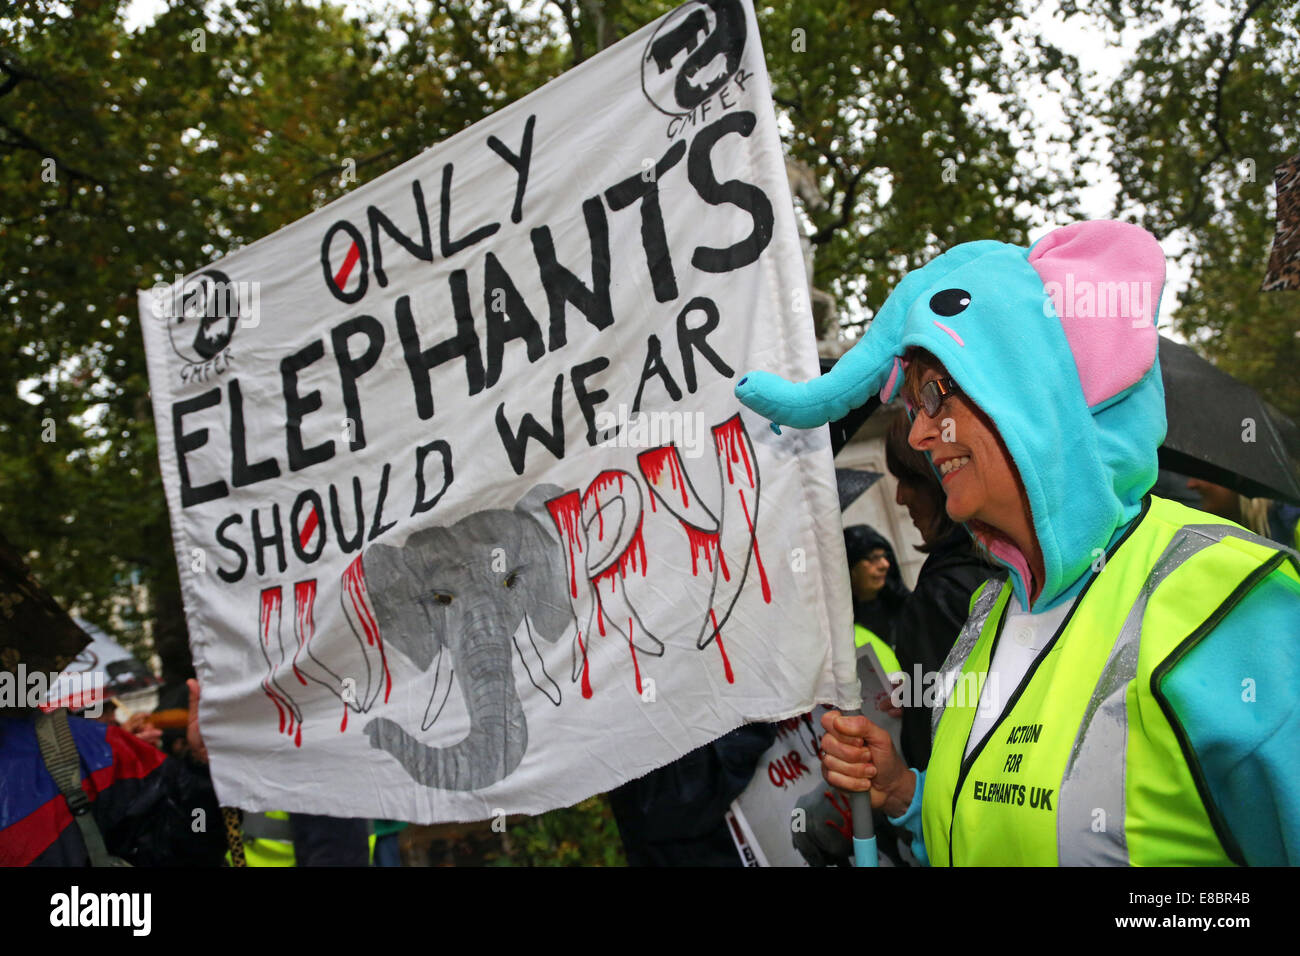 London, UK. 4th October 2014. Marchers with placards and banners at the Global March for Elephants and Rhinos, London, - Stock Image